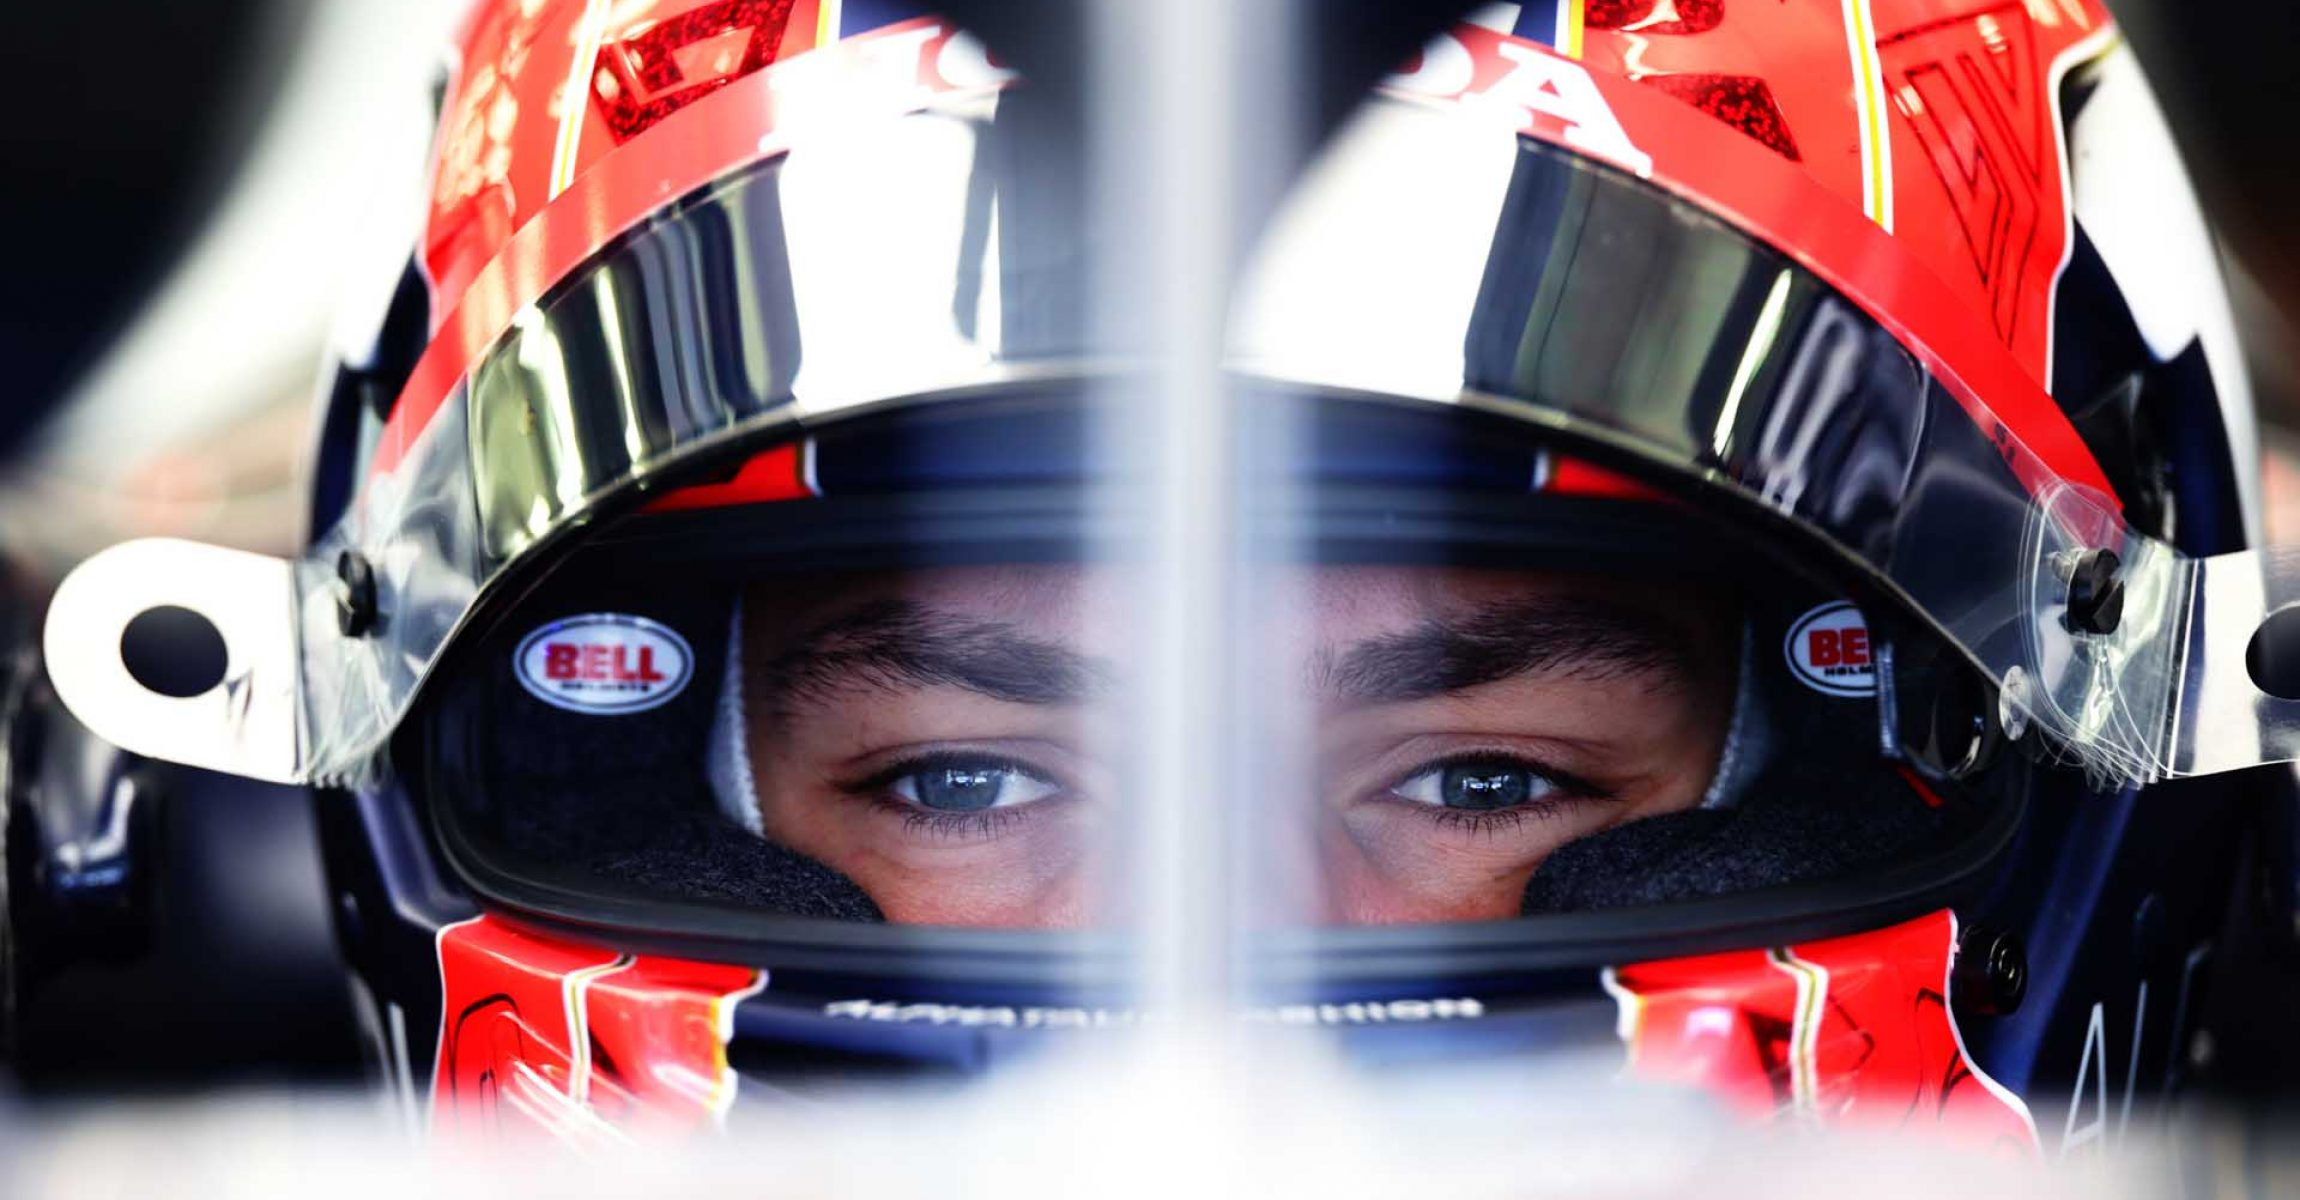 BAHRAIN, BAHRAIN - MARCH 14: Pierre Gasly of France and Scuderia AlphaTauri prepares to drive in the garage during Day Three of F1 Testing at Bahrain International Circuit on March 14, 2021 in Bahrain, Bahrain. (Photo by Peter Fox/Getty Images) // Getty Images / Red Bull Content Pool  // SI202103140035 // Usage for editorial use only //